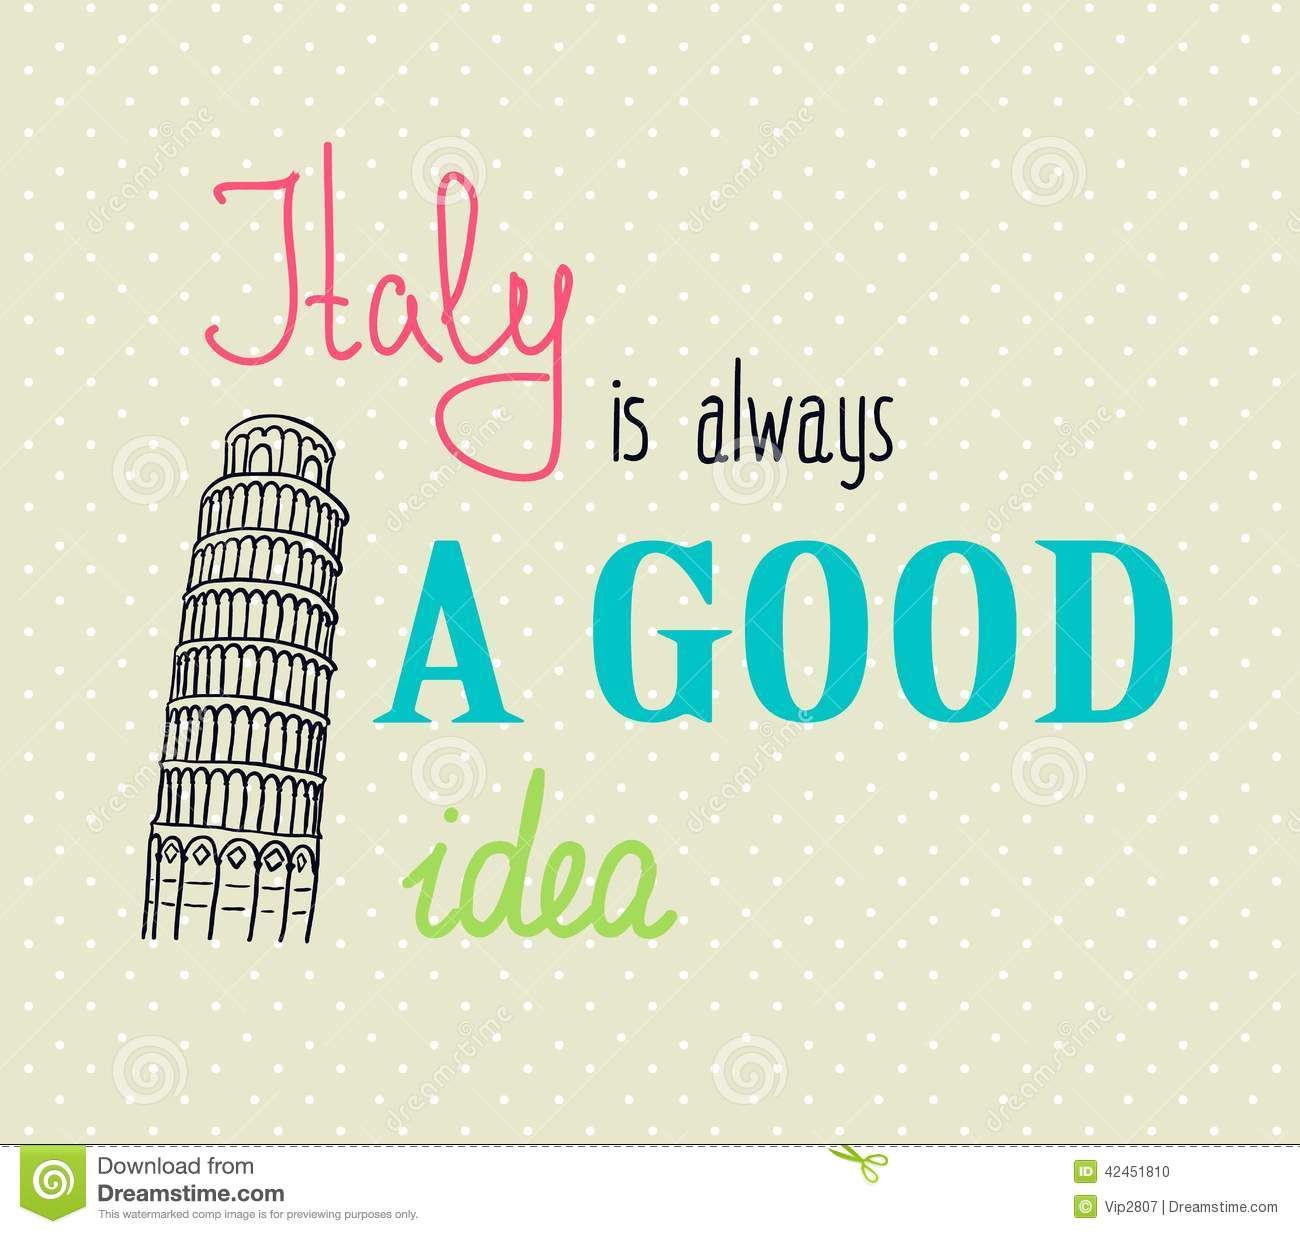 Italy Quotes Italy Is Always A Good Idea Travel To Italylenora Boyle